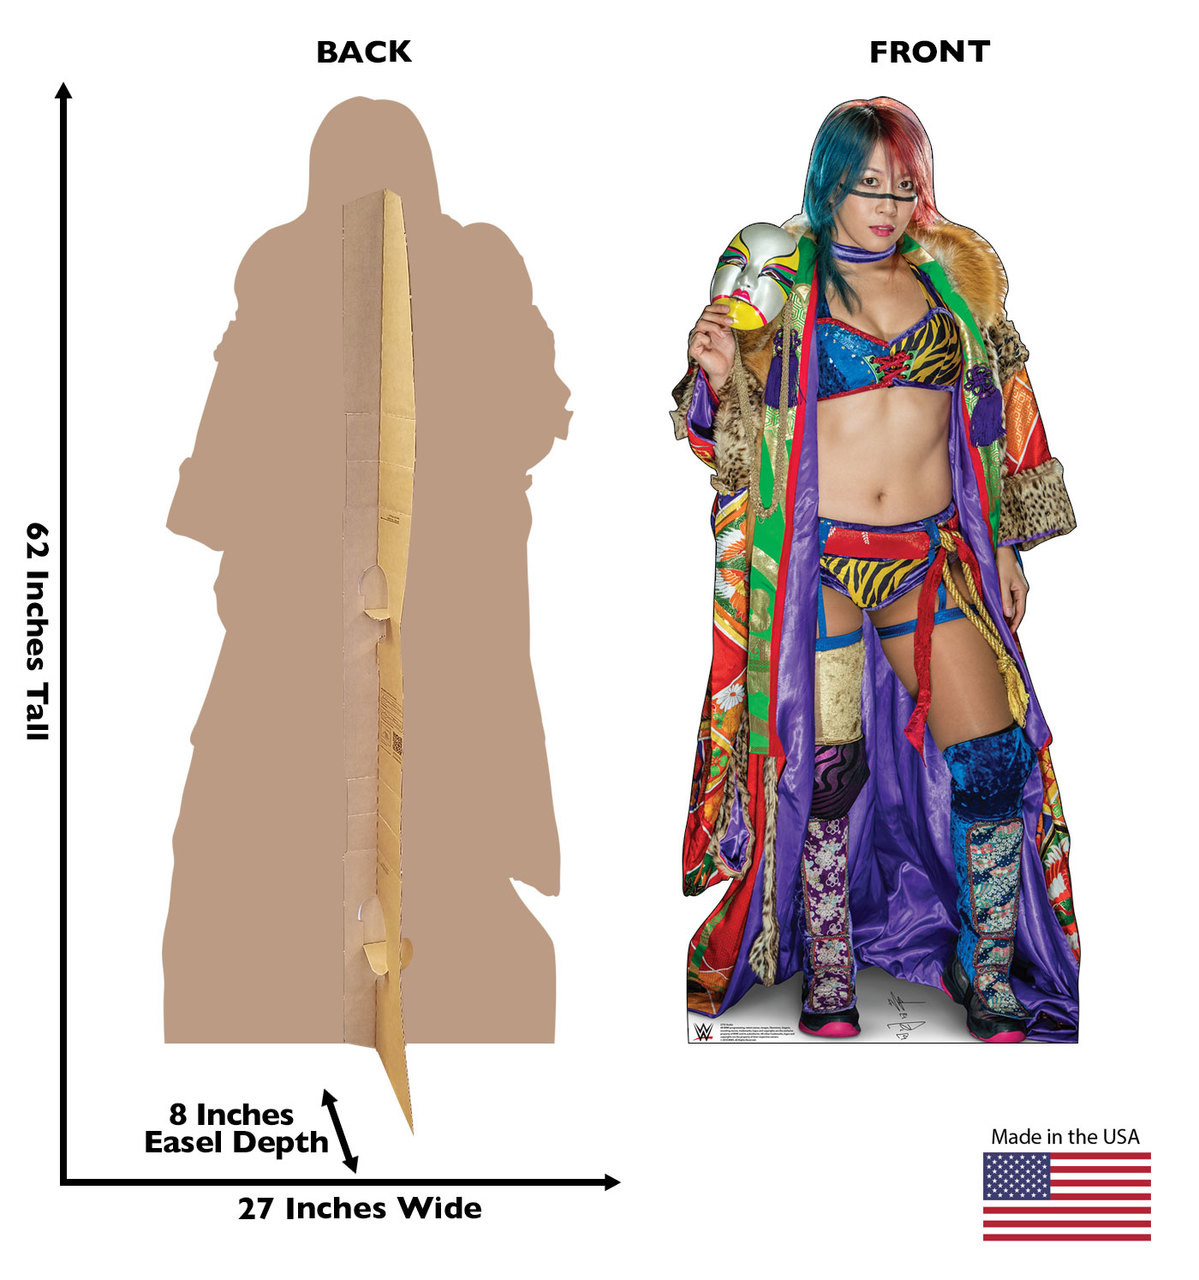 Asuka Life-size cardboard standee front and back with dimensions.